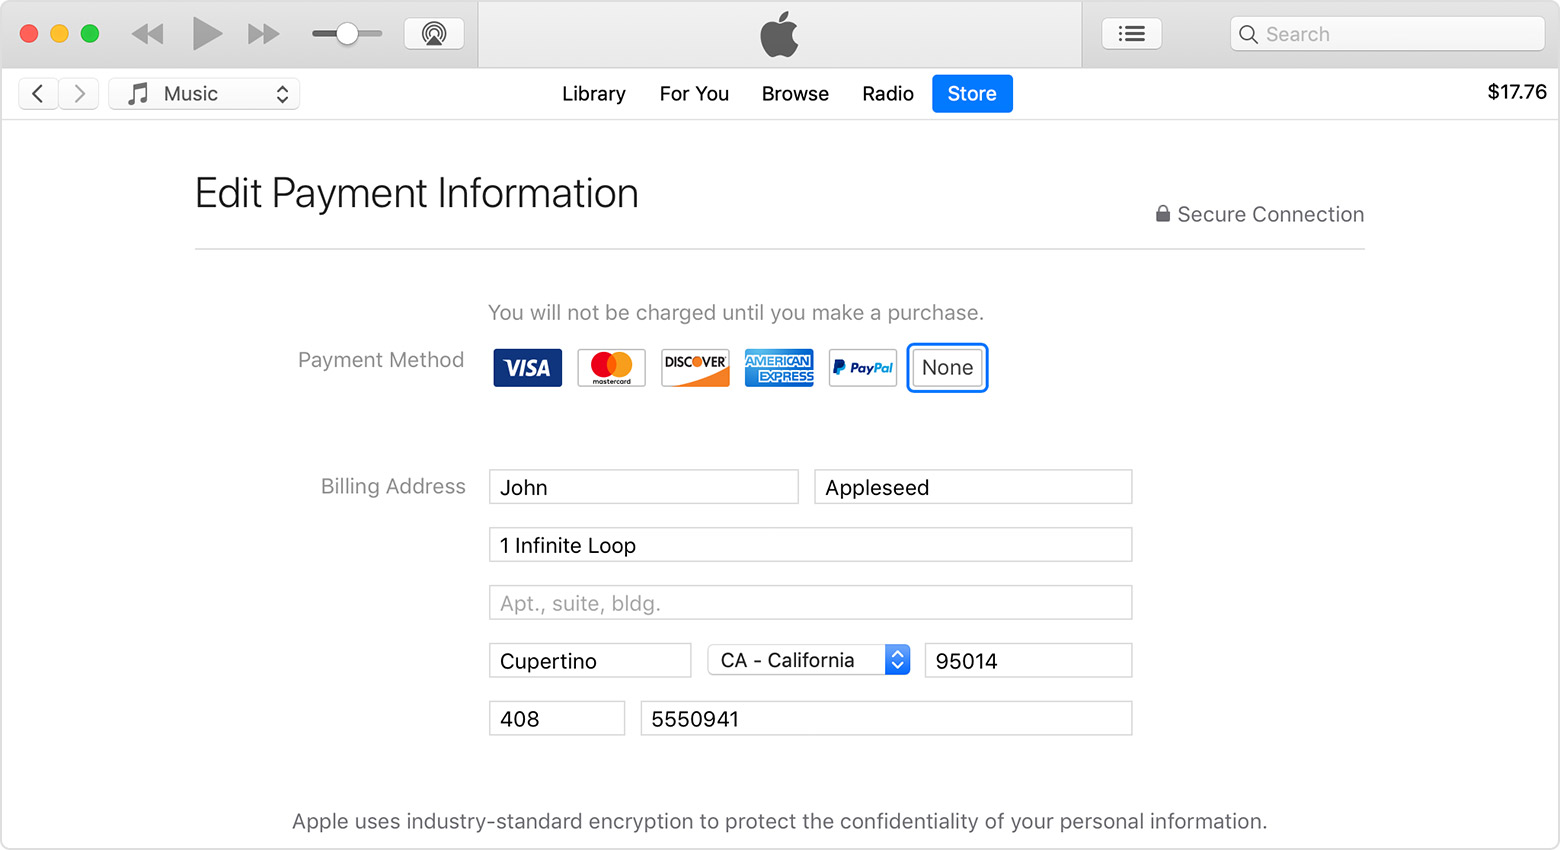 How to remove debit card from itunes